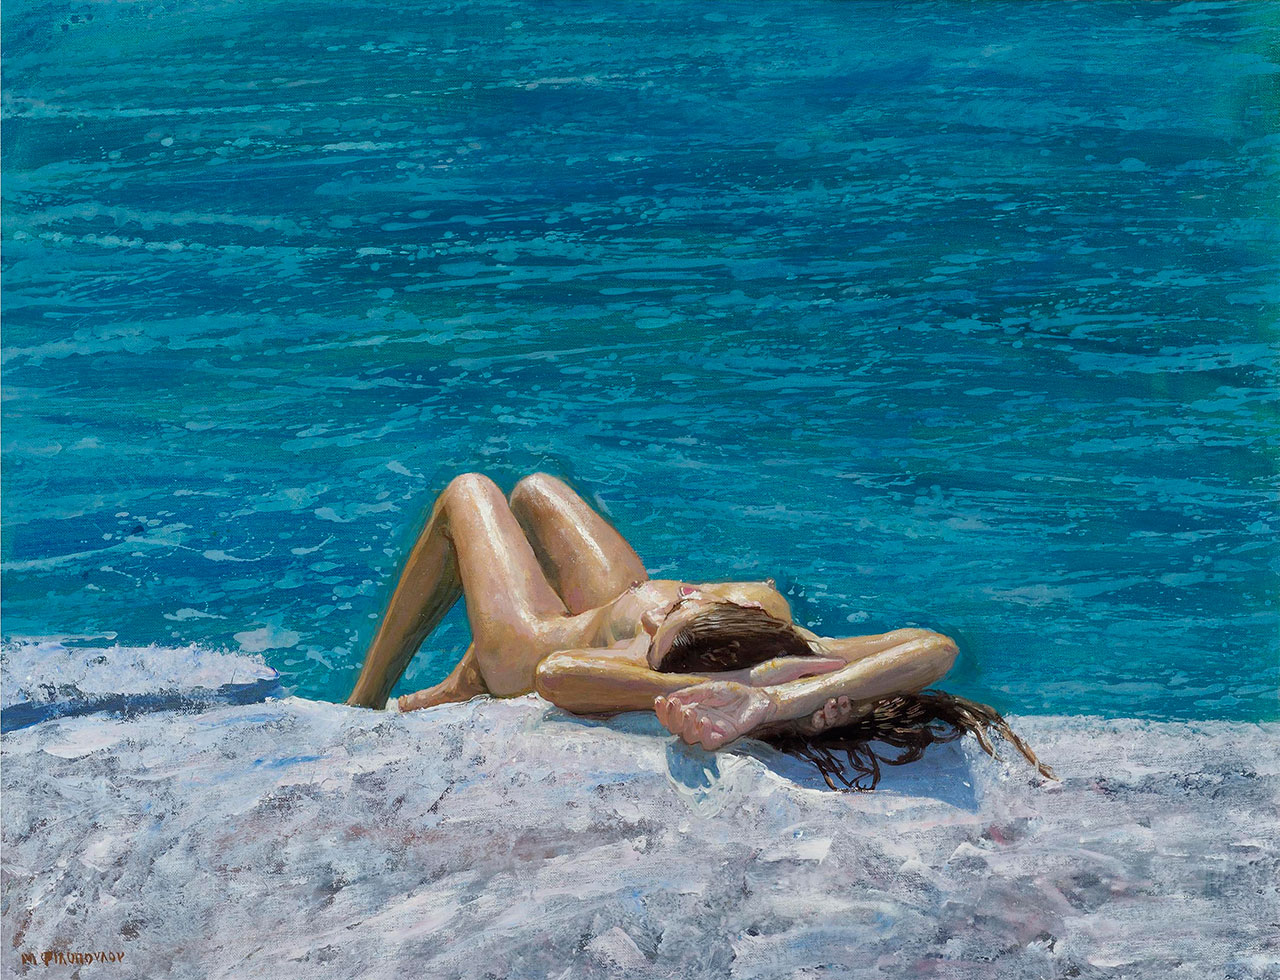 Maria Filopoulou, Nude, 2009. Oil on canvas, 60 x 98cm.